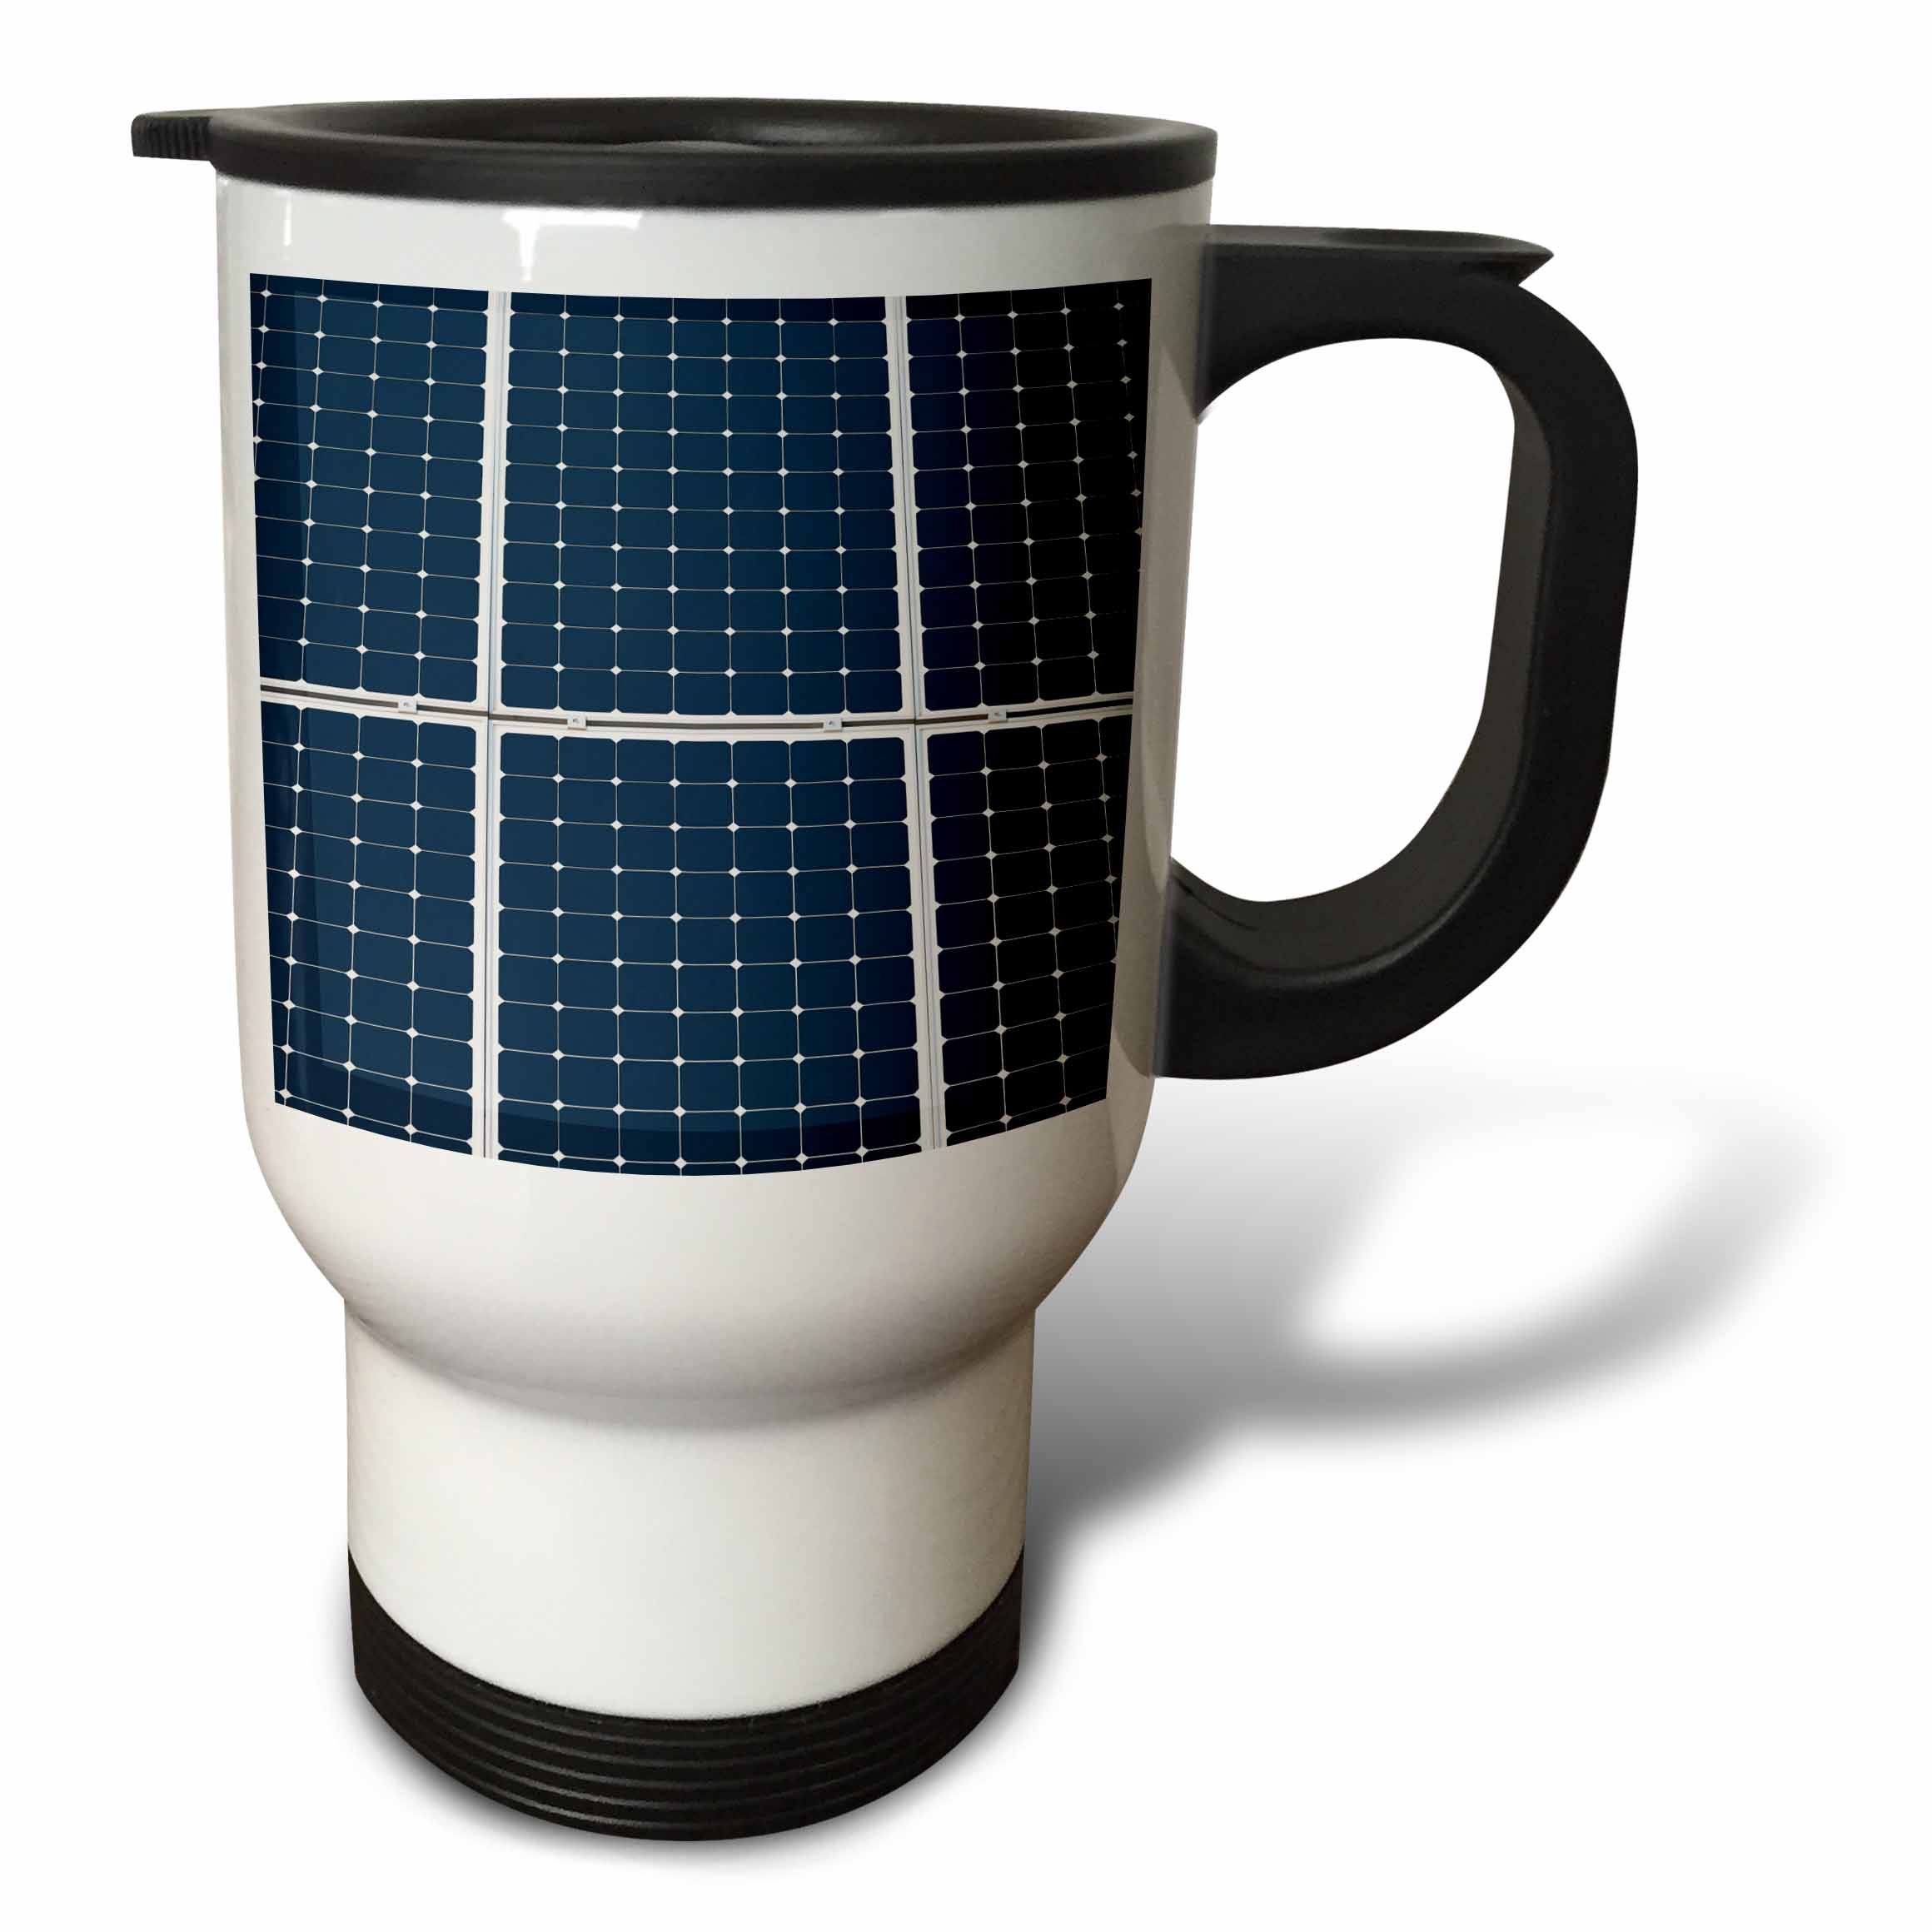 3dRose Alexis Photography - Objects - Image of solar power panel. Dark blue cells white grid - 14oz Stainless Steel Travel Mug (tm_264065_1)